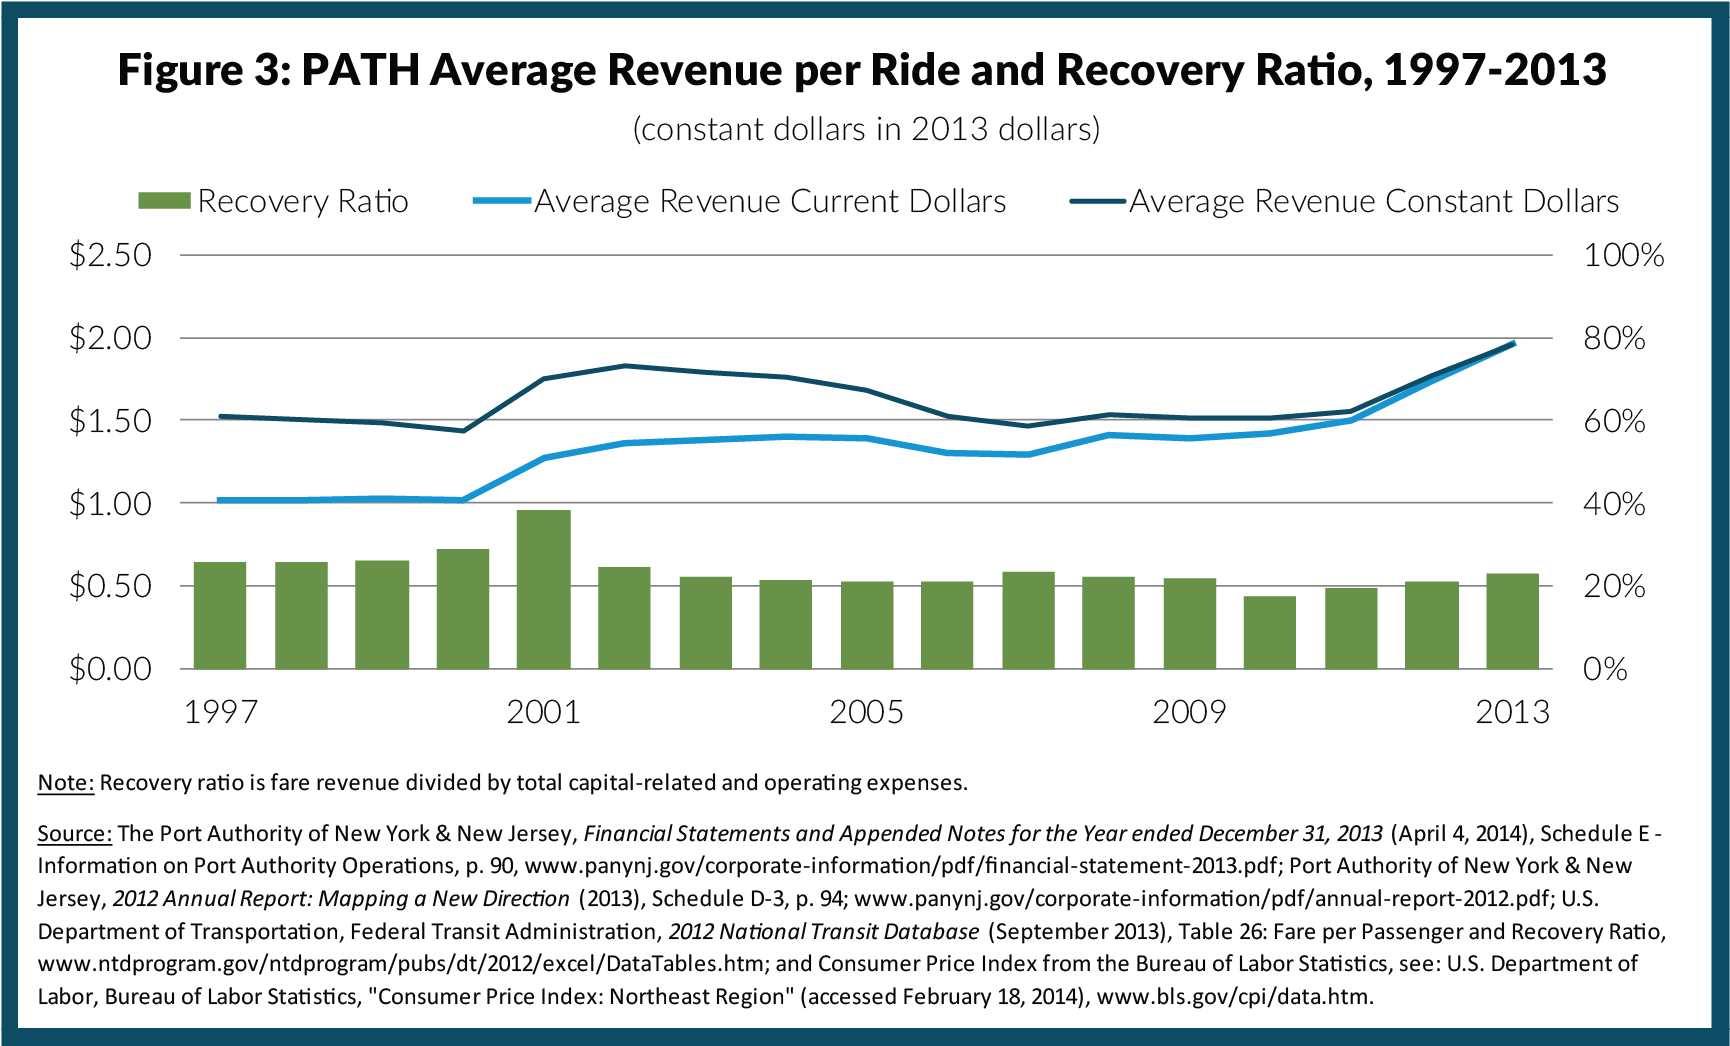 Figure 3: PATH Average Revenue per Ride and Recovery Ratio, 1997-2013